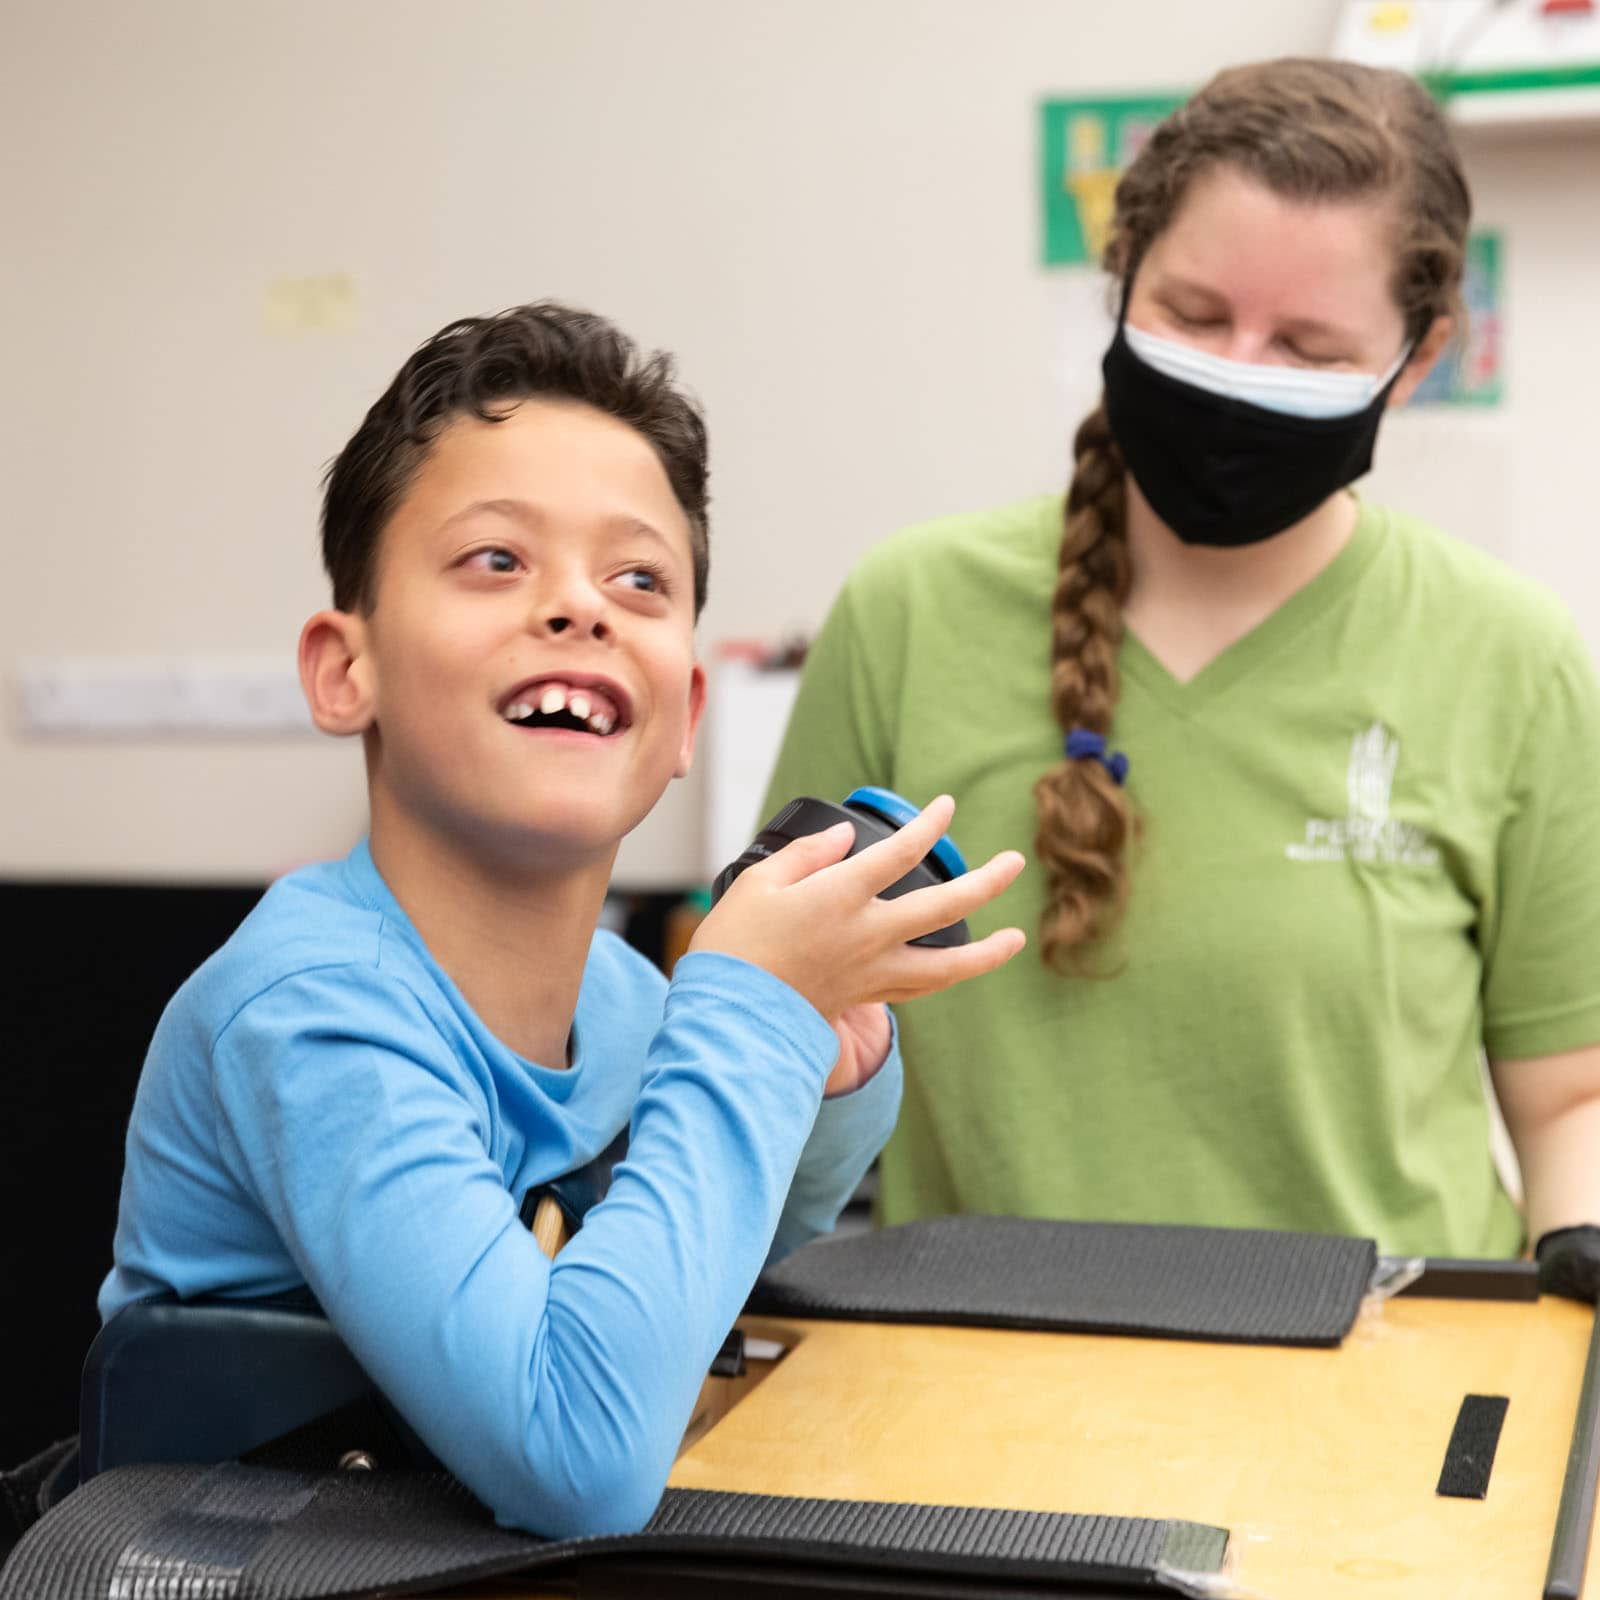 A student in an assistive stander holds a switch and smiles - his teacher stands at his side